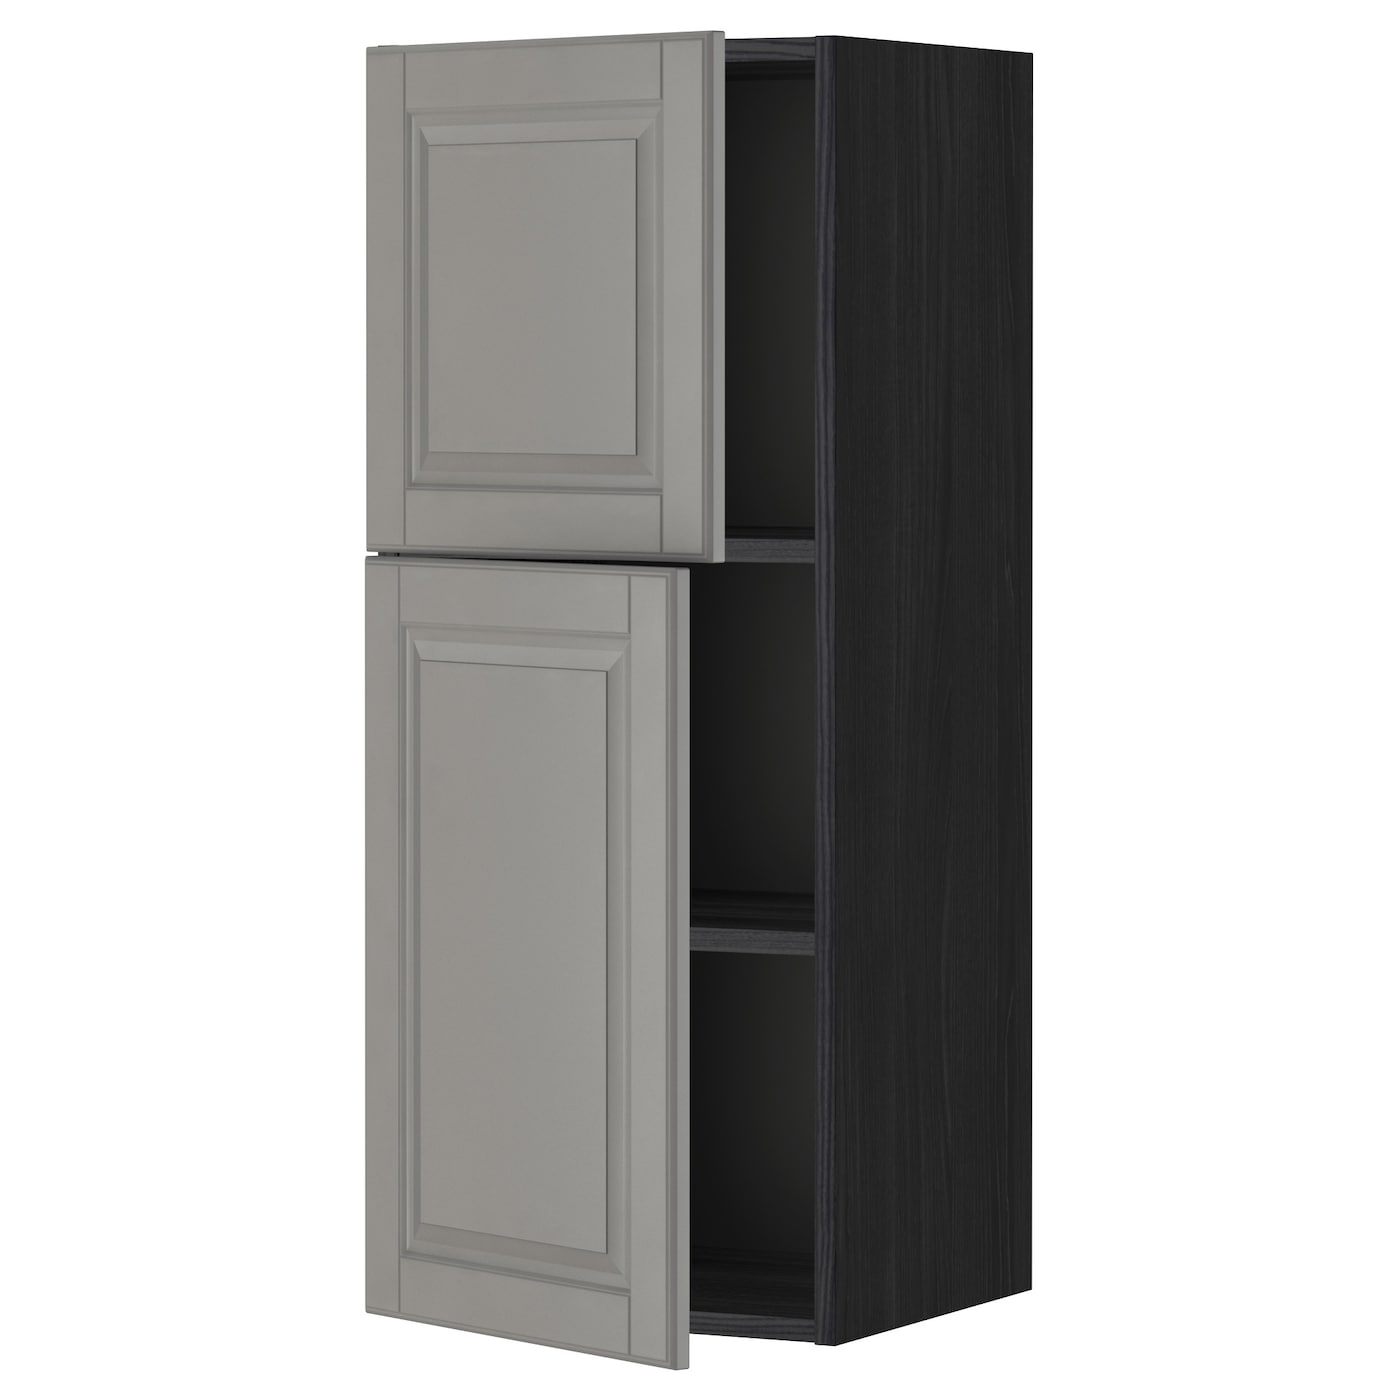 Metod Wall Cabinet With Shelves: METOD Wall Cabinet With Shelves/2 Doors Black/bodbyn Grey